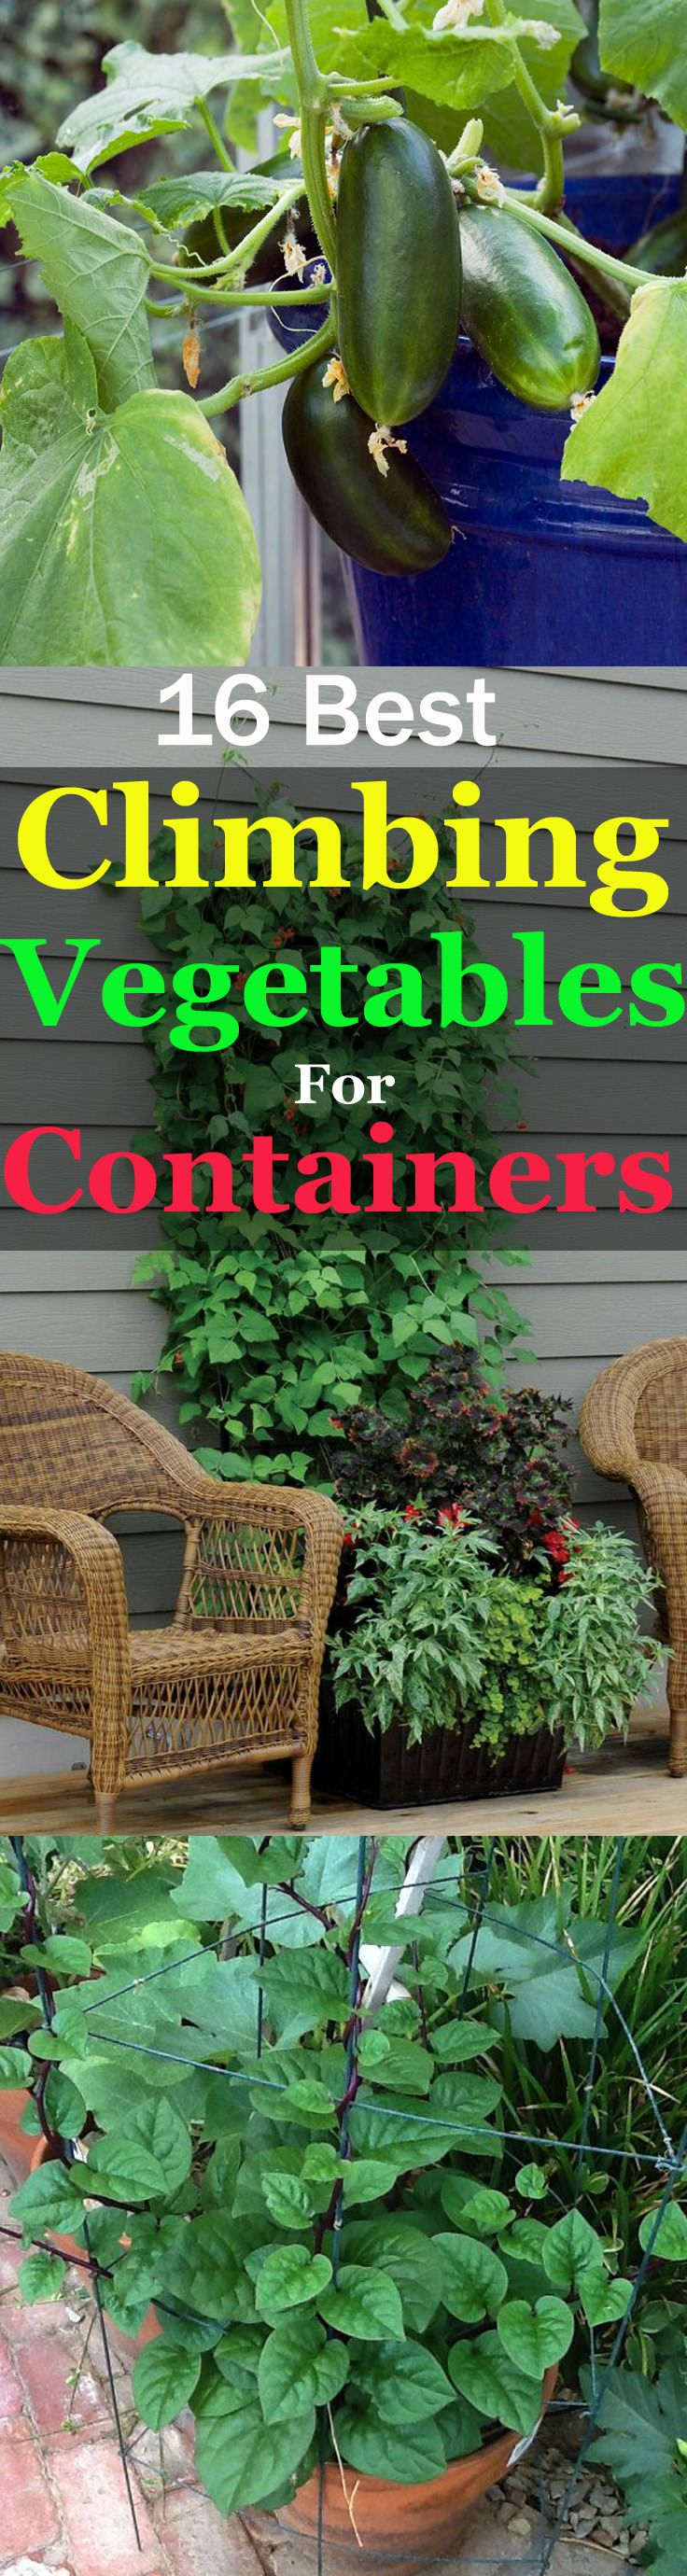 how to keep dogs out of vegetable garden